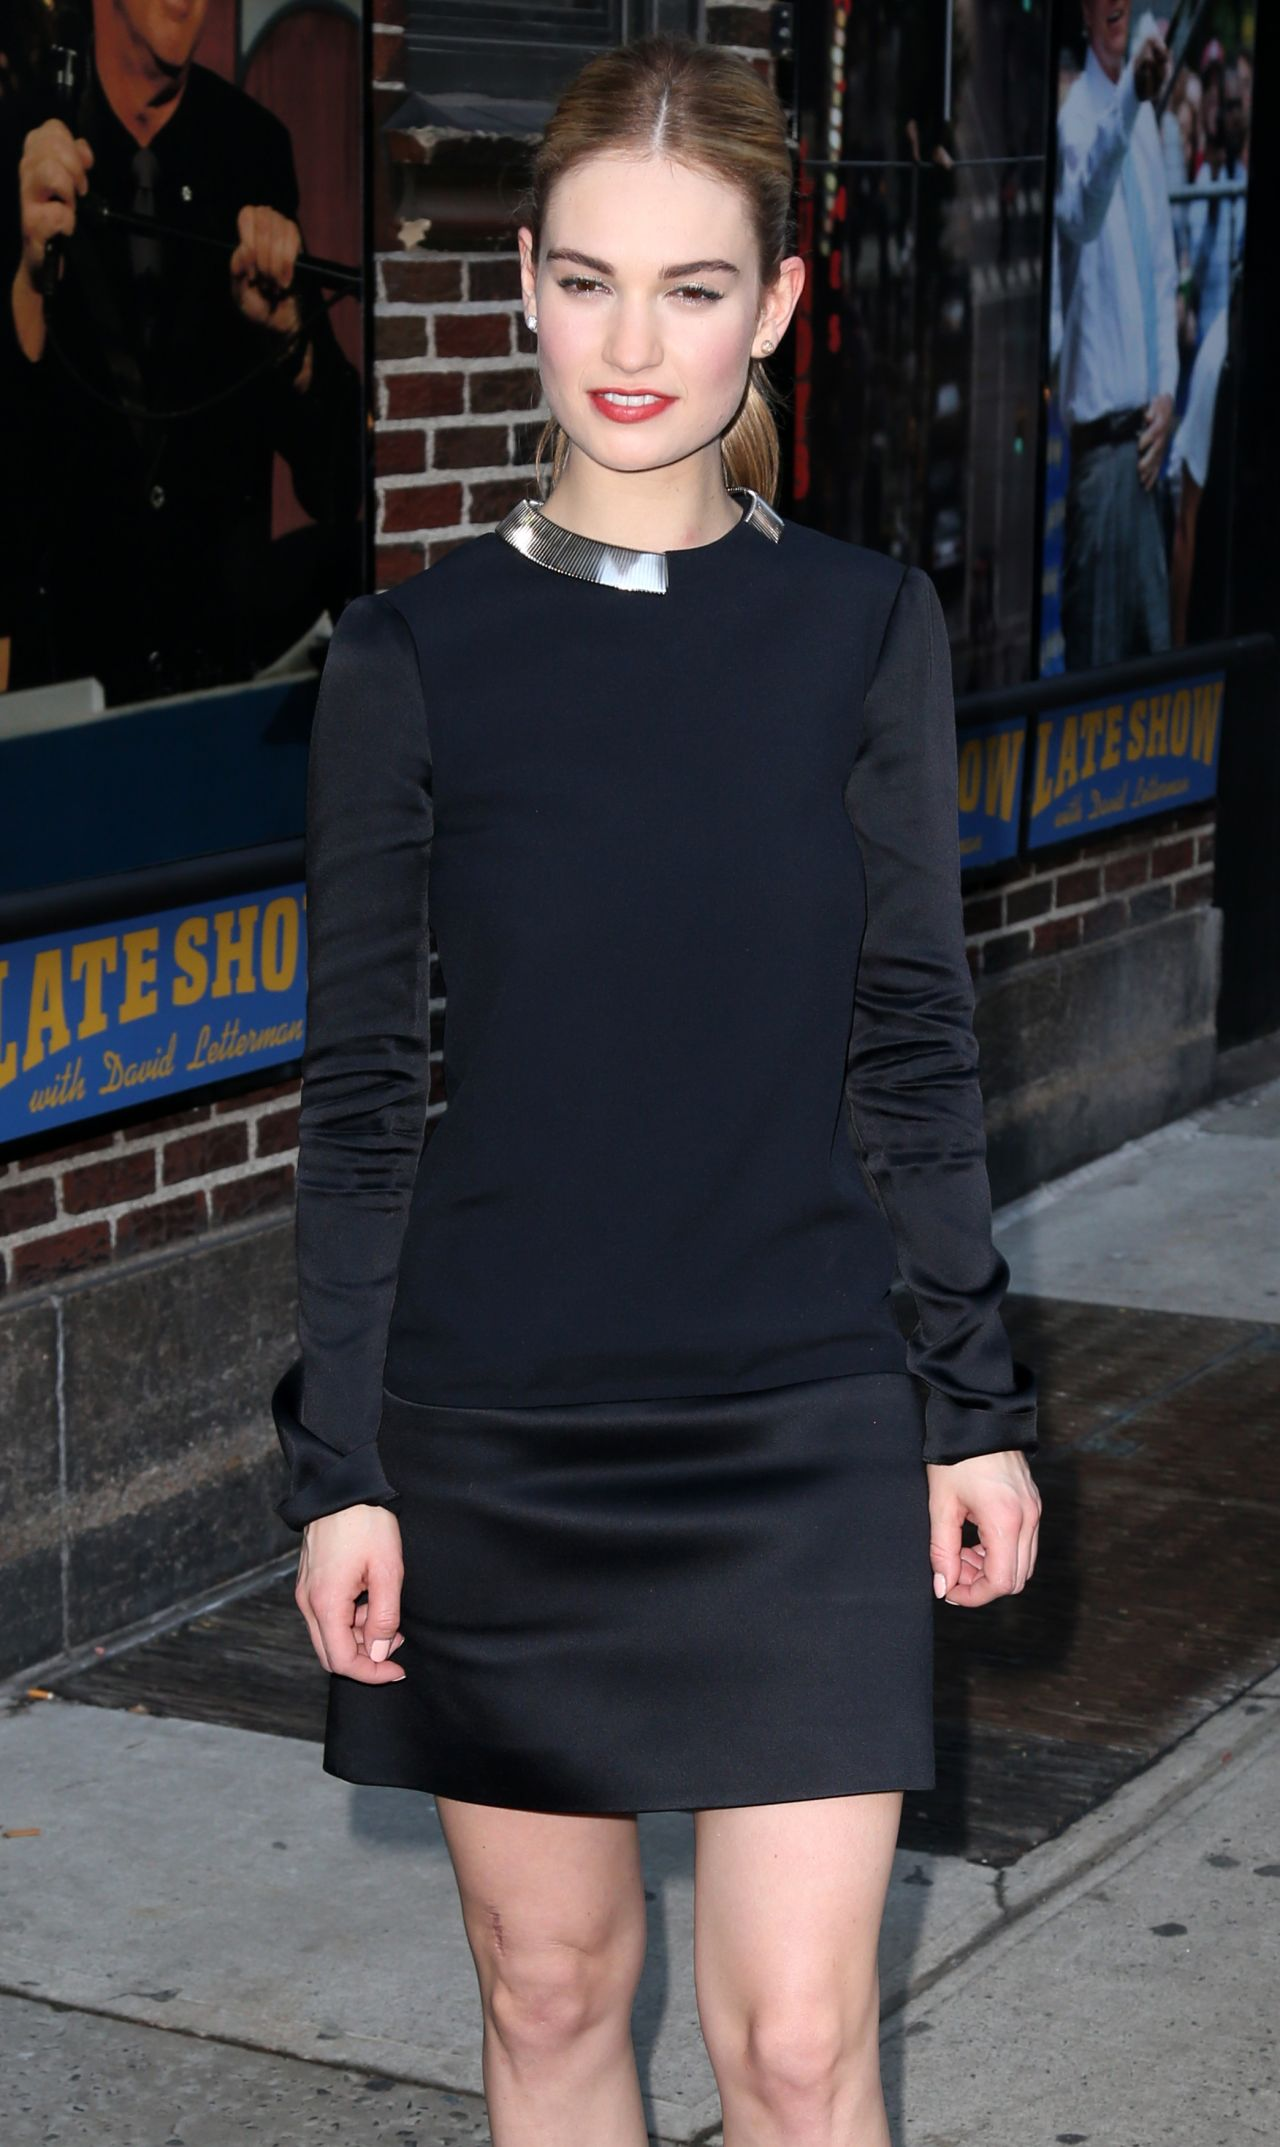 Lily James Arriving to Appear on Late Show With David Letterman in New York City, March 2015